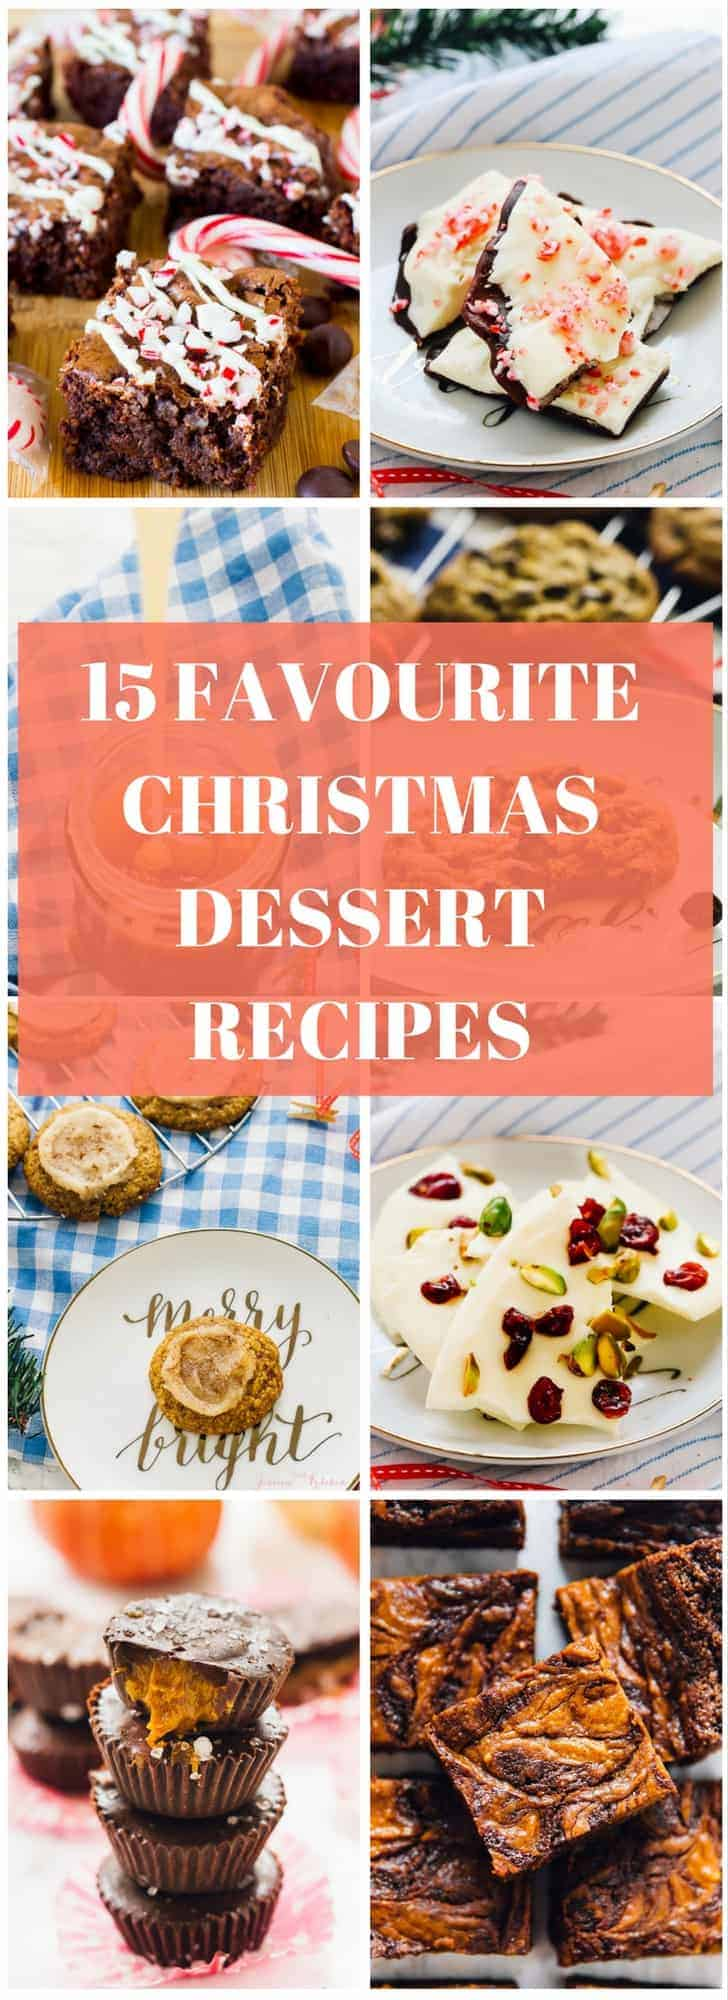 Here are my 15 Favourite Christmas Dessert Recipes for the holiday season! They're perfect for so many occasions - from a quick treat to an impressive dessert, and all taste absolutely divine!